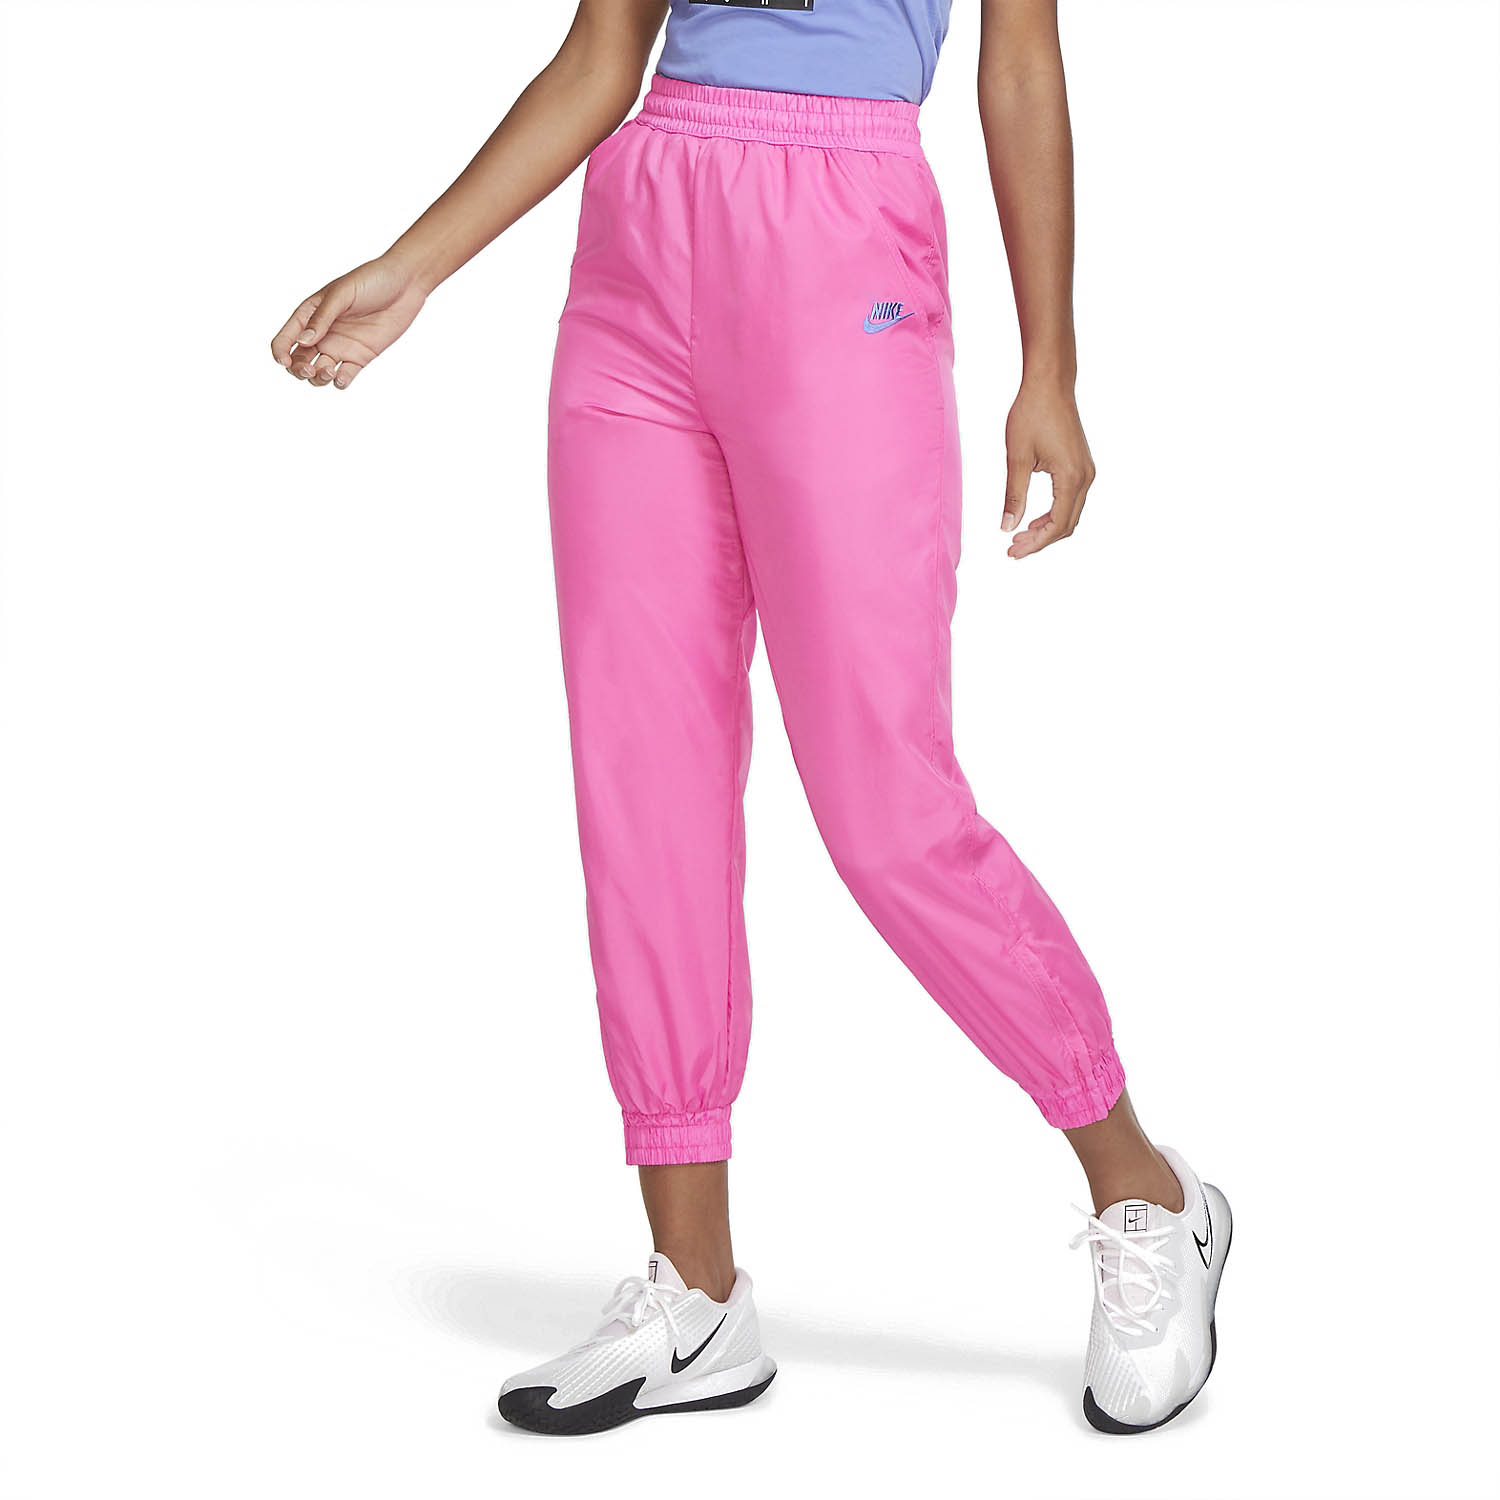 Nike Challenge Court Pants - Pink Foil/Hot Lime/White/Sapphire